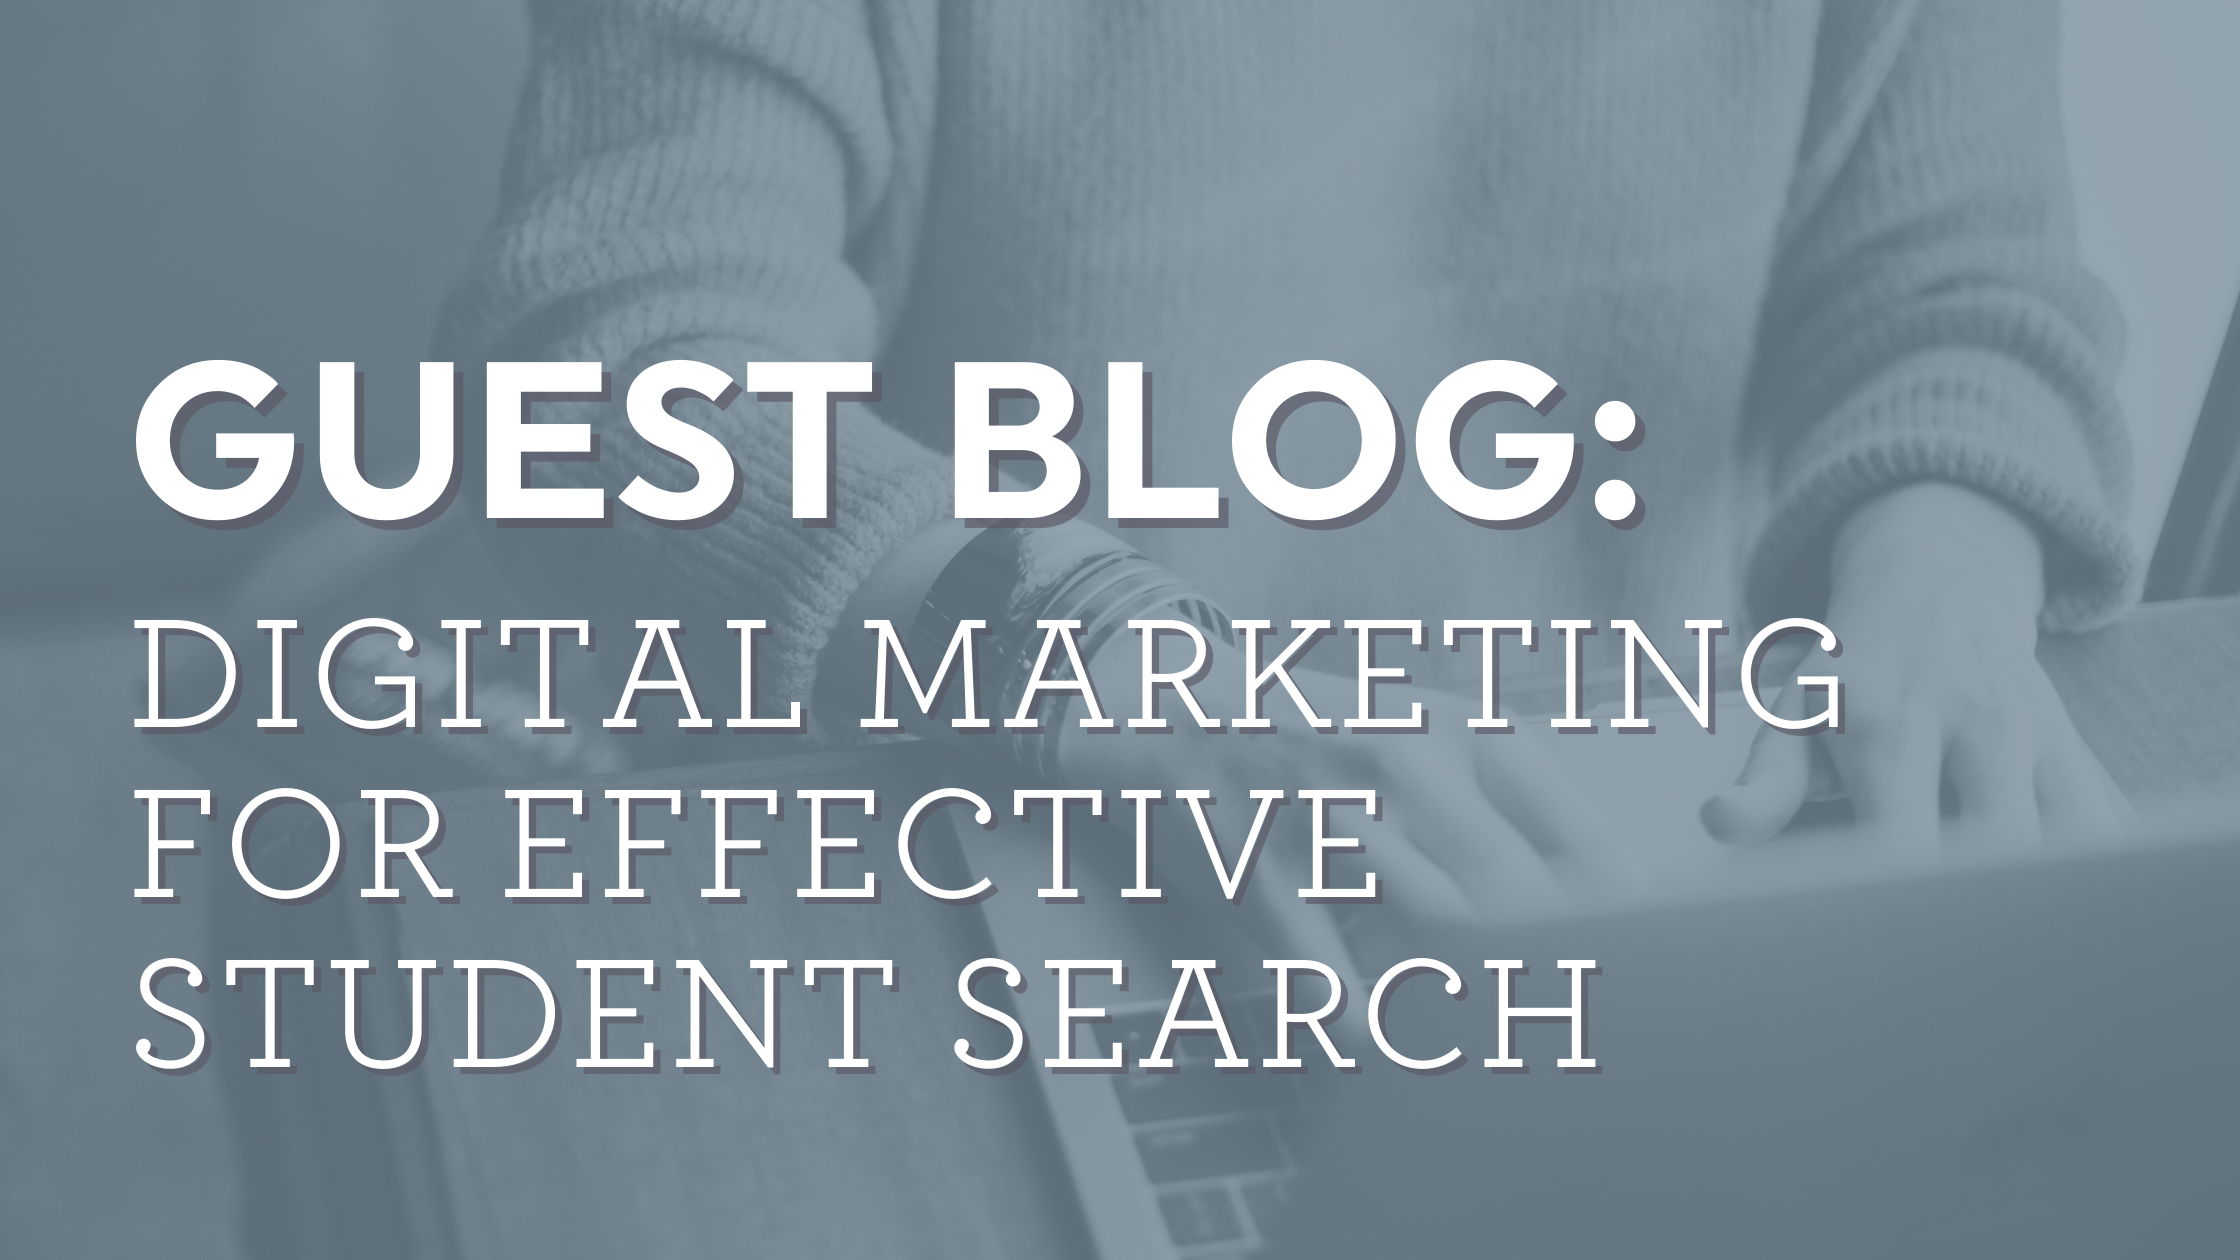 Digital Marketing for Effective Student Search